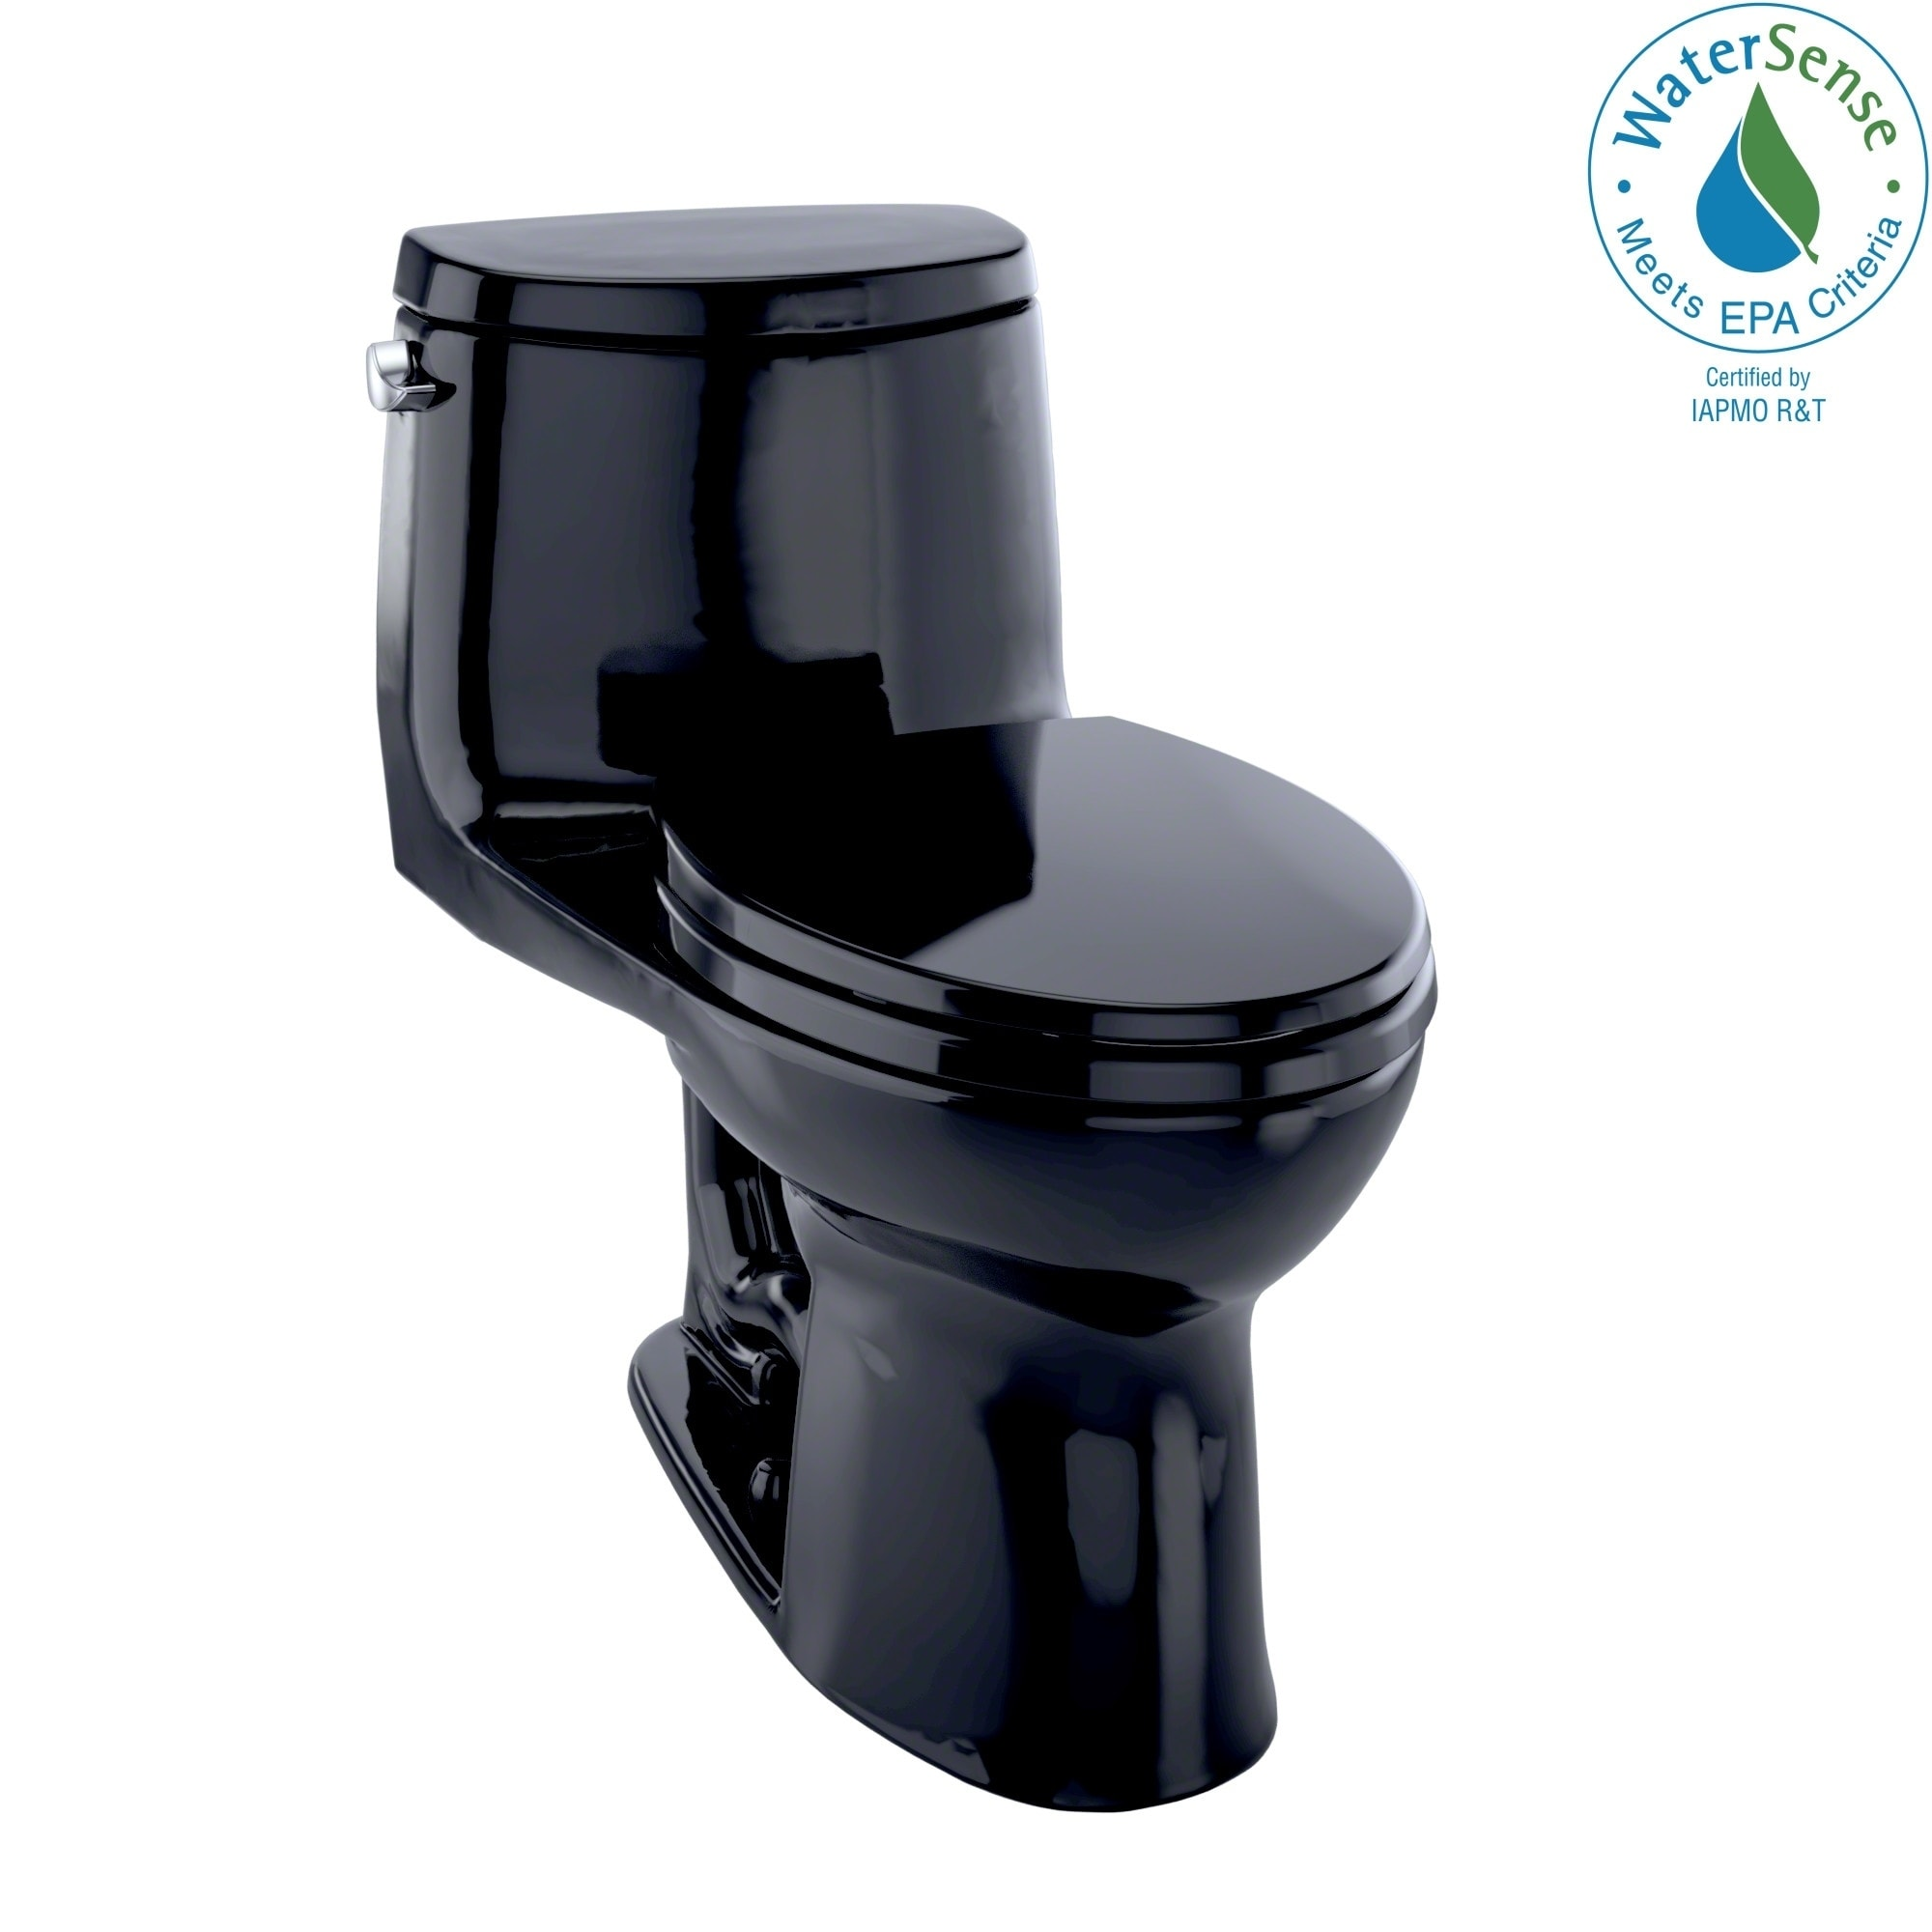 Toto Ultramax II One-piece Toilet Ebony (Ebony), Grey metal